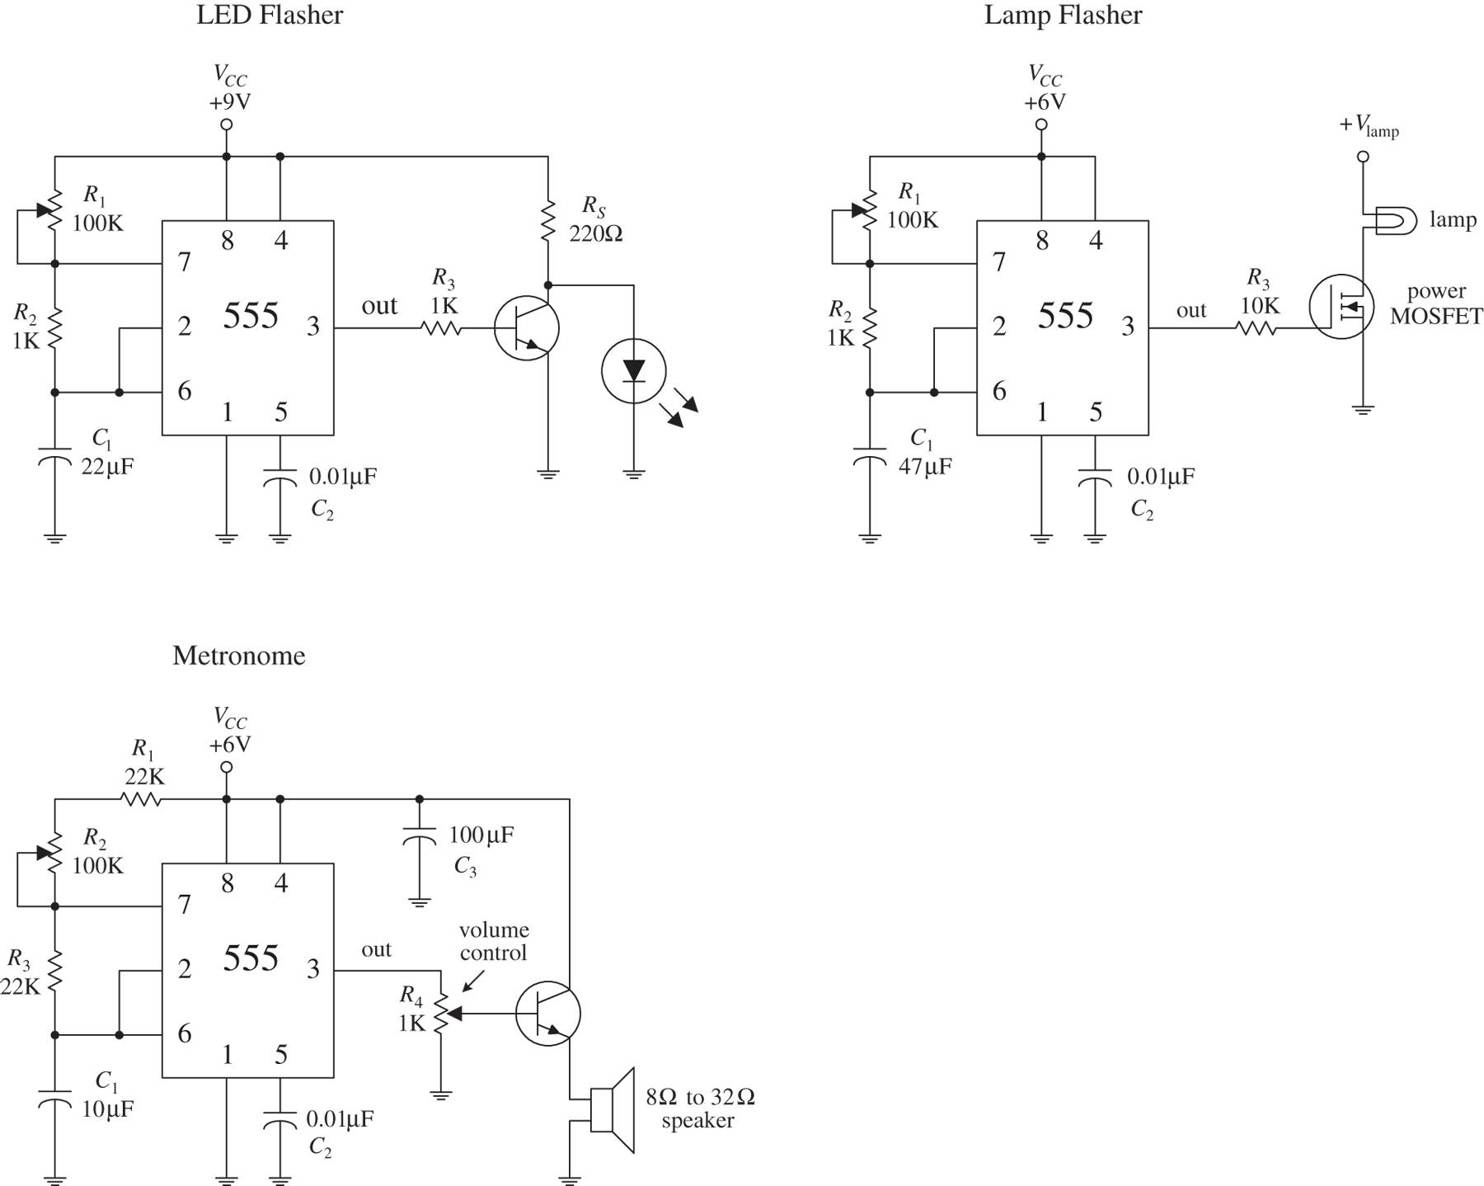 Voltage Controlled Oscillator Vco Using 555 Timer Ic The Control 555timervoltagecontrolledoscillator Img